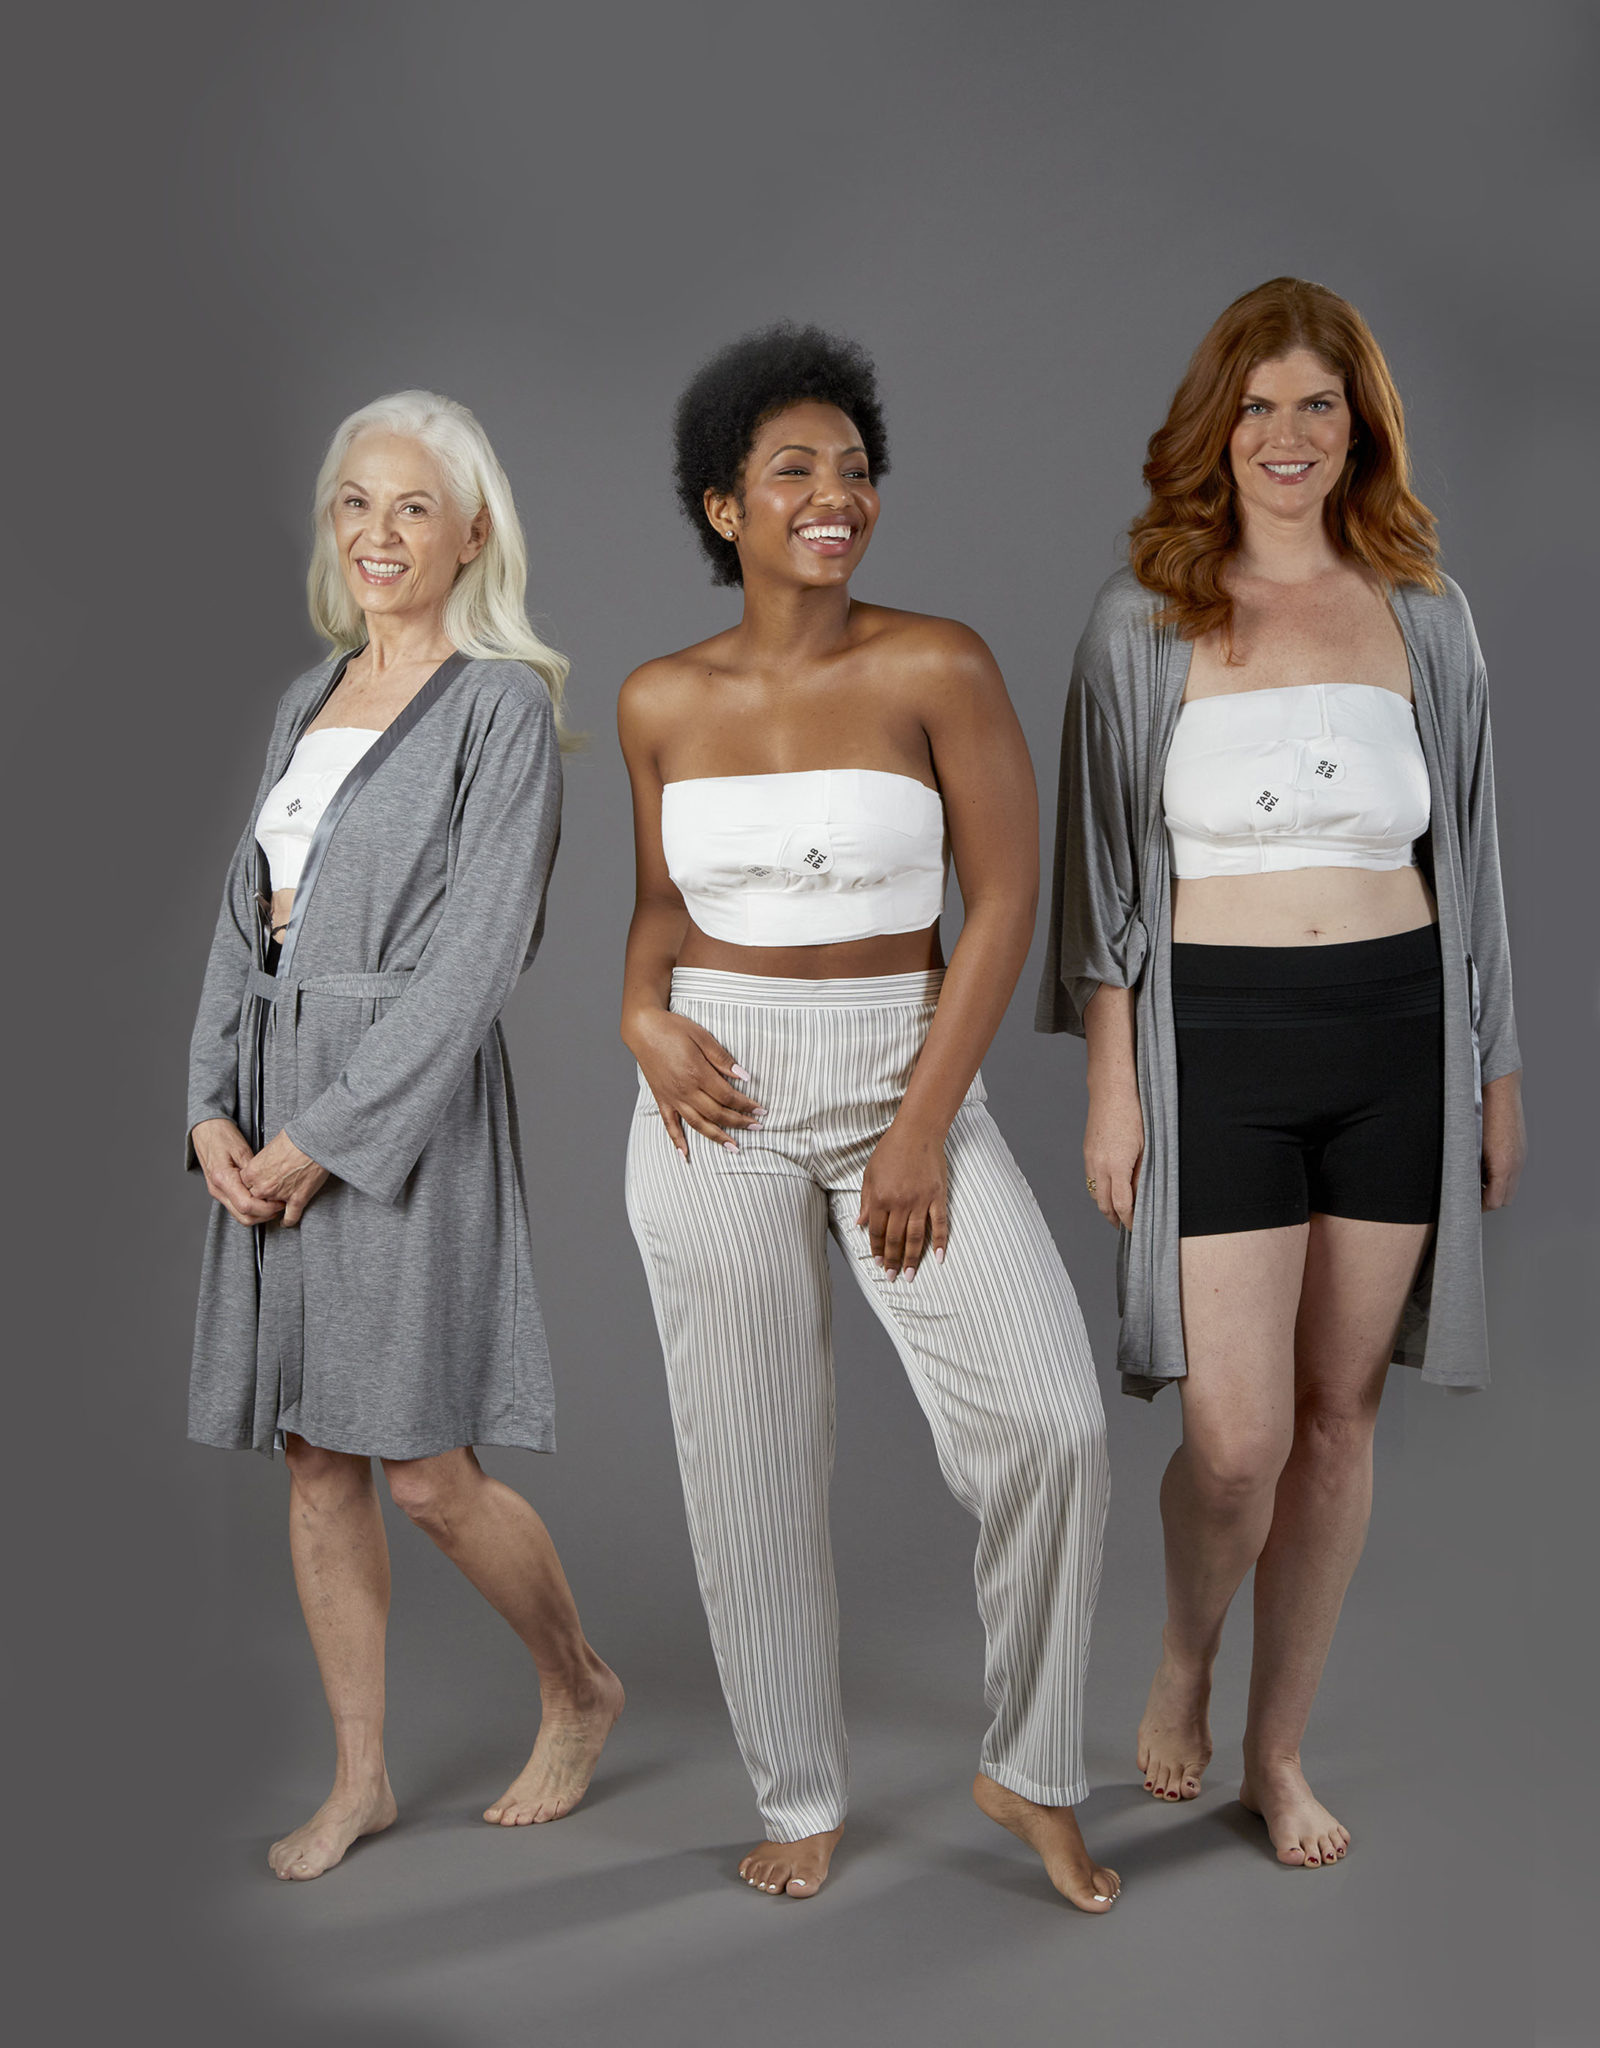 three women of different ages smiling while wearing their EZBRA